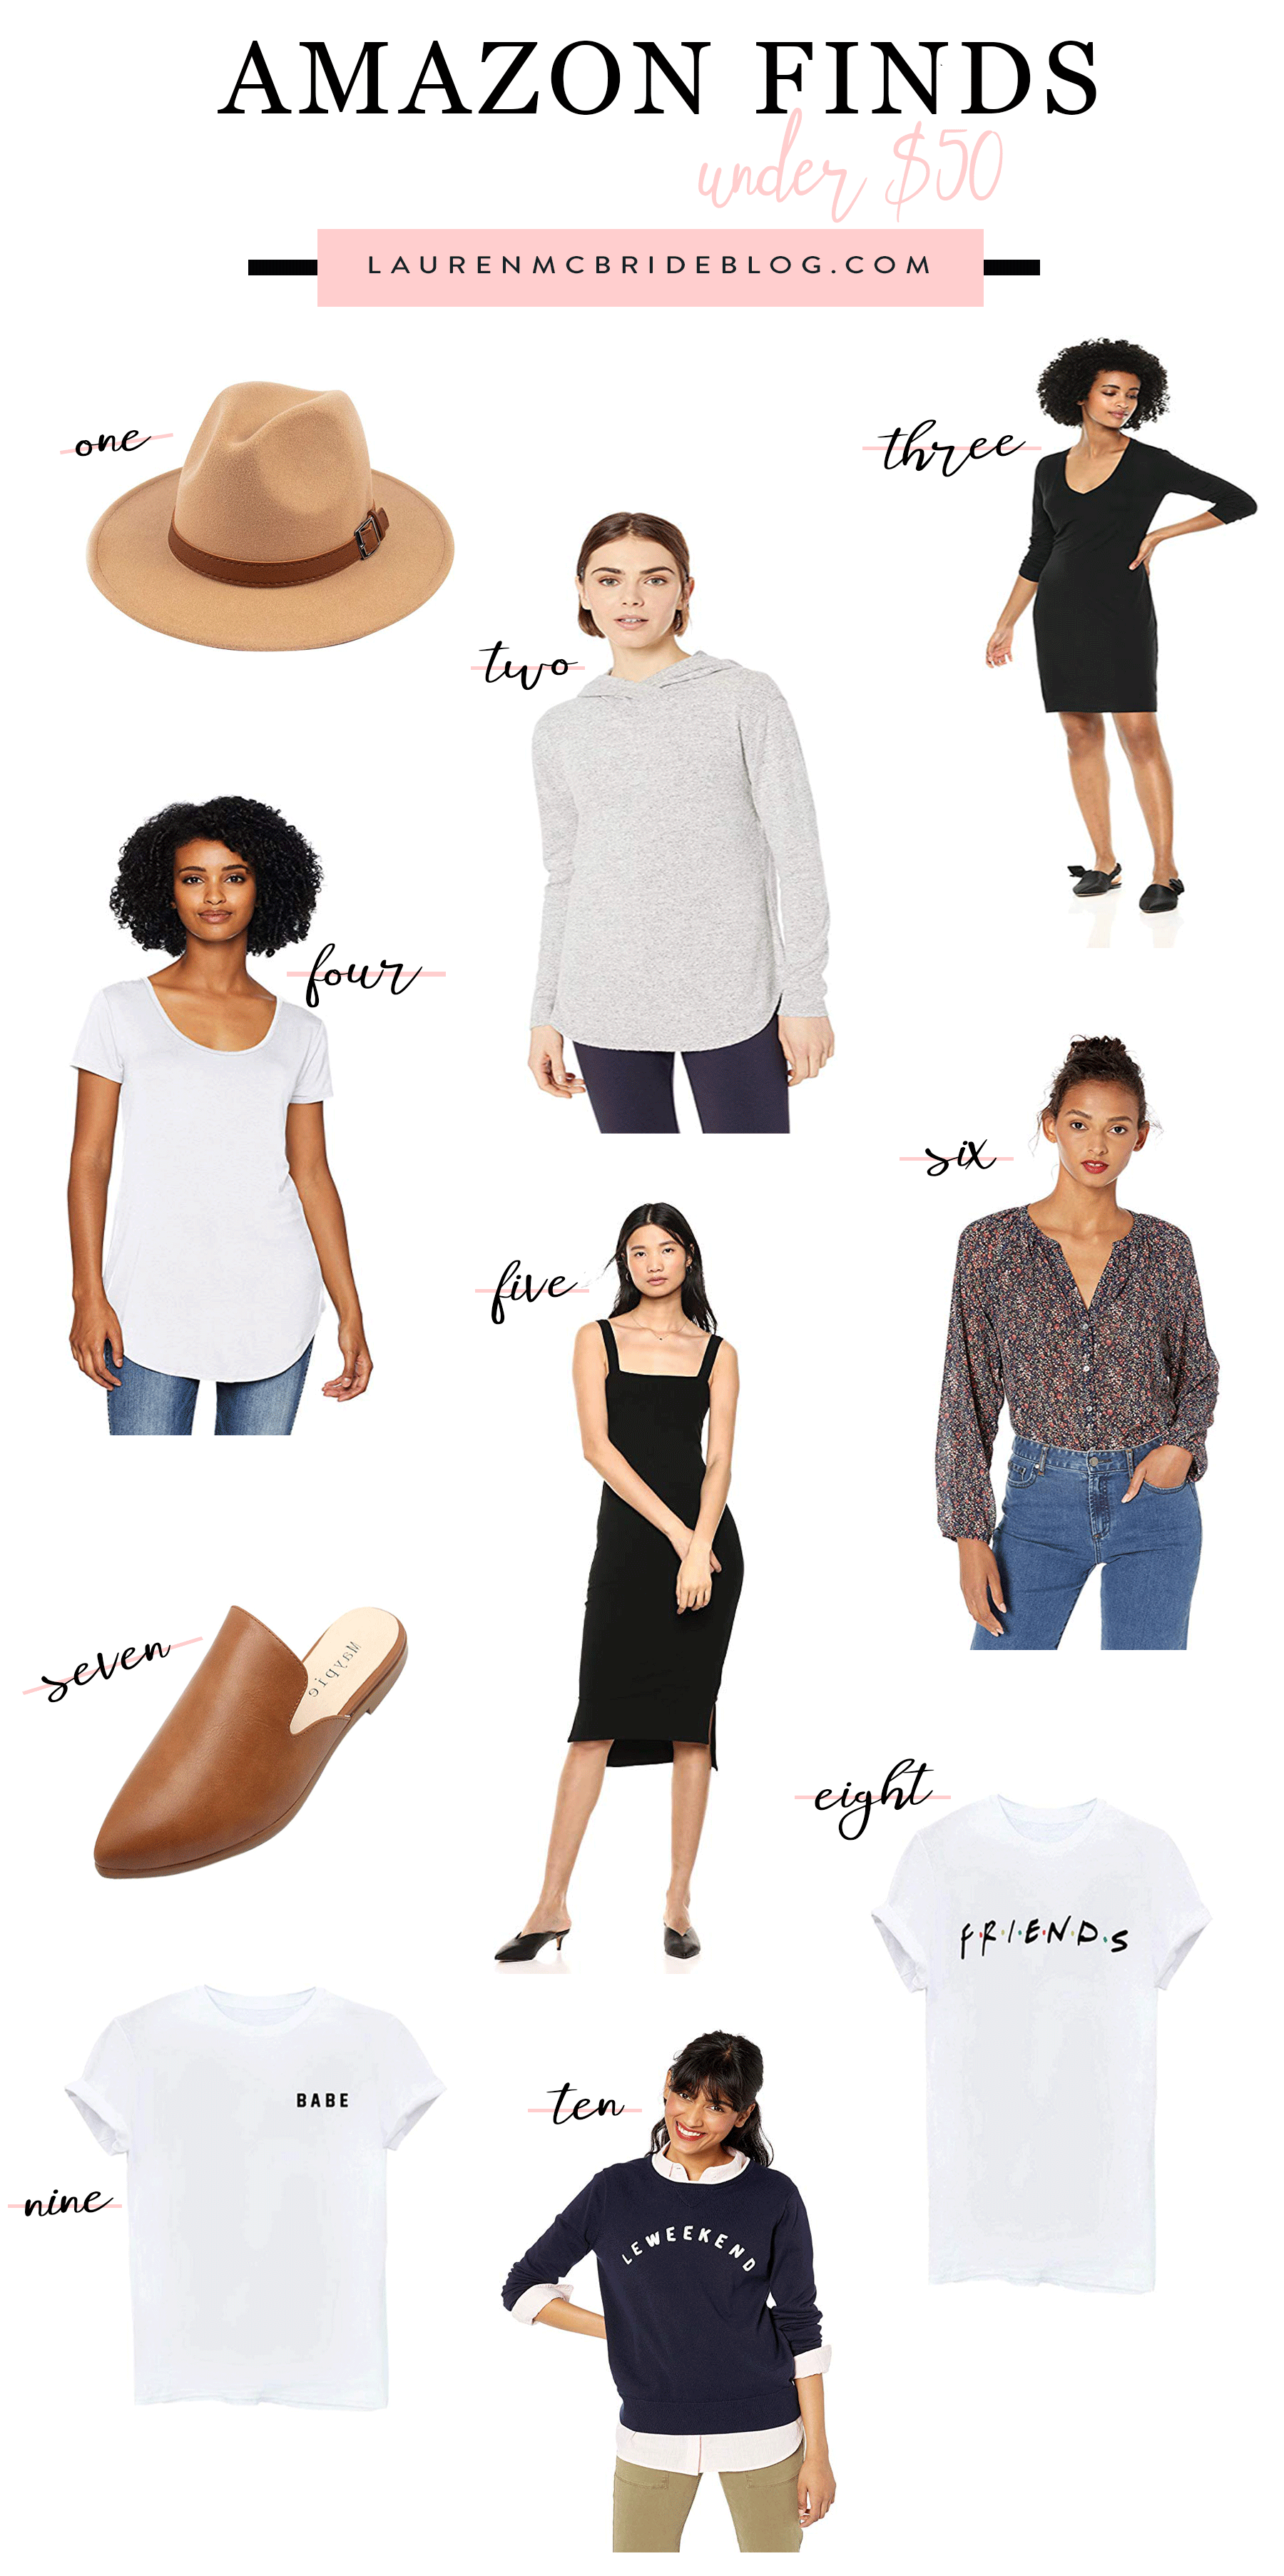 Connecticut life and style blogger Lauren McBride shares her September Amazon Finds Under $50 including some fall transitional pieces.